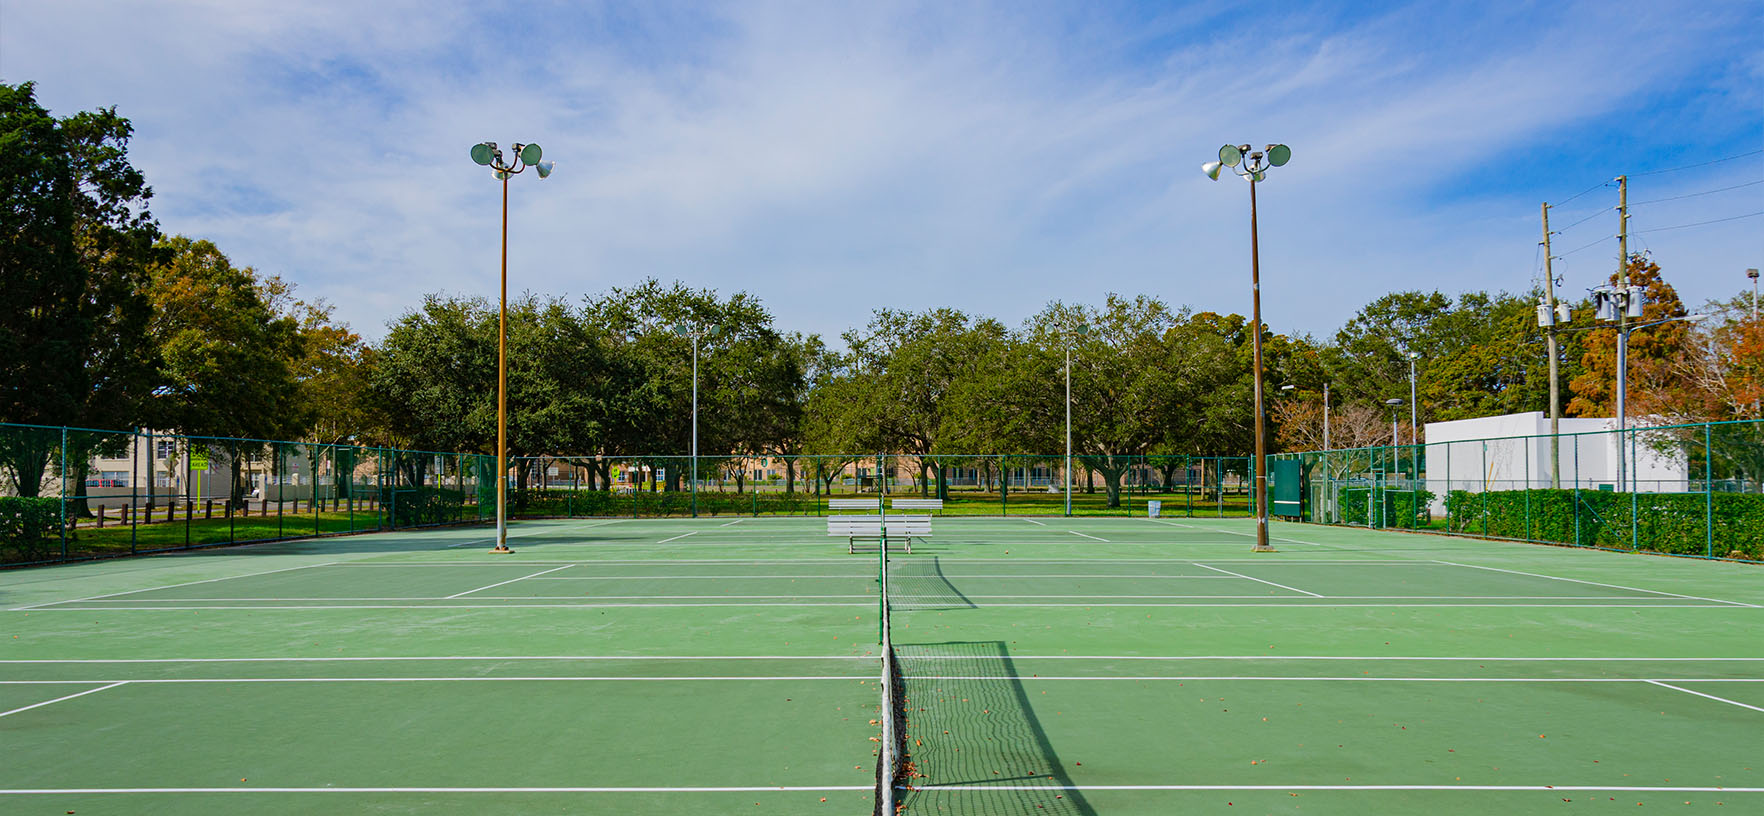 Campbell Park outdoor tennis court